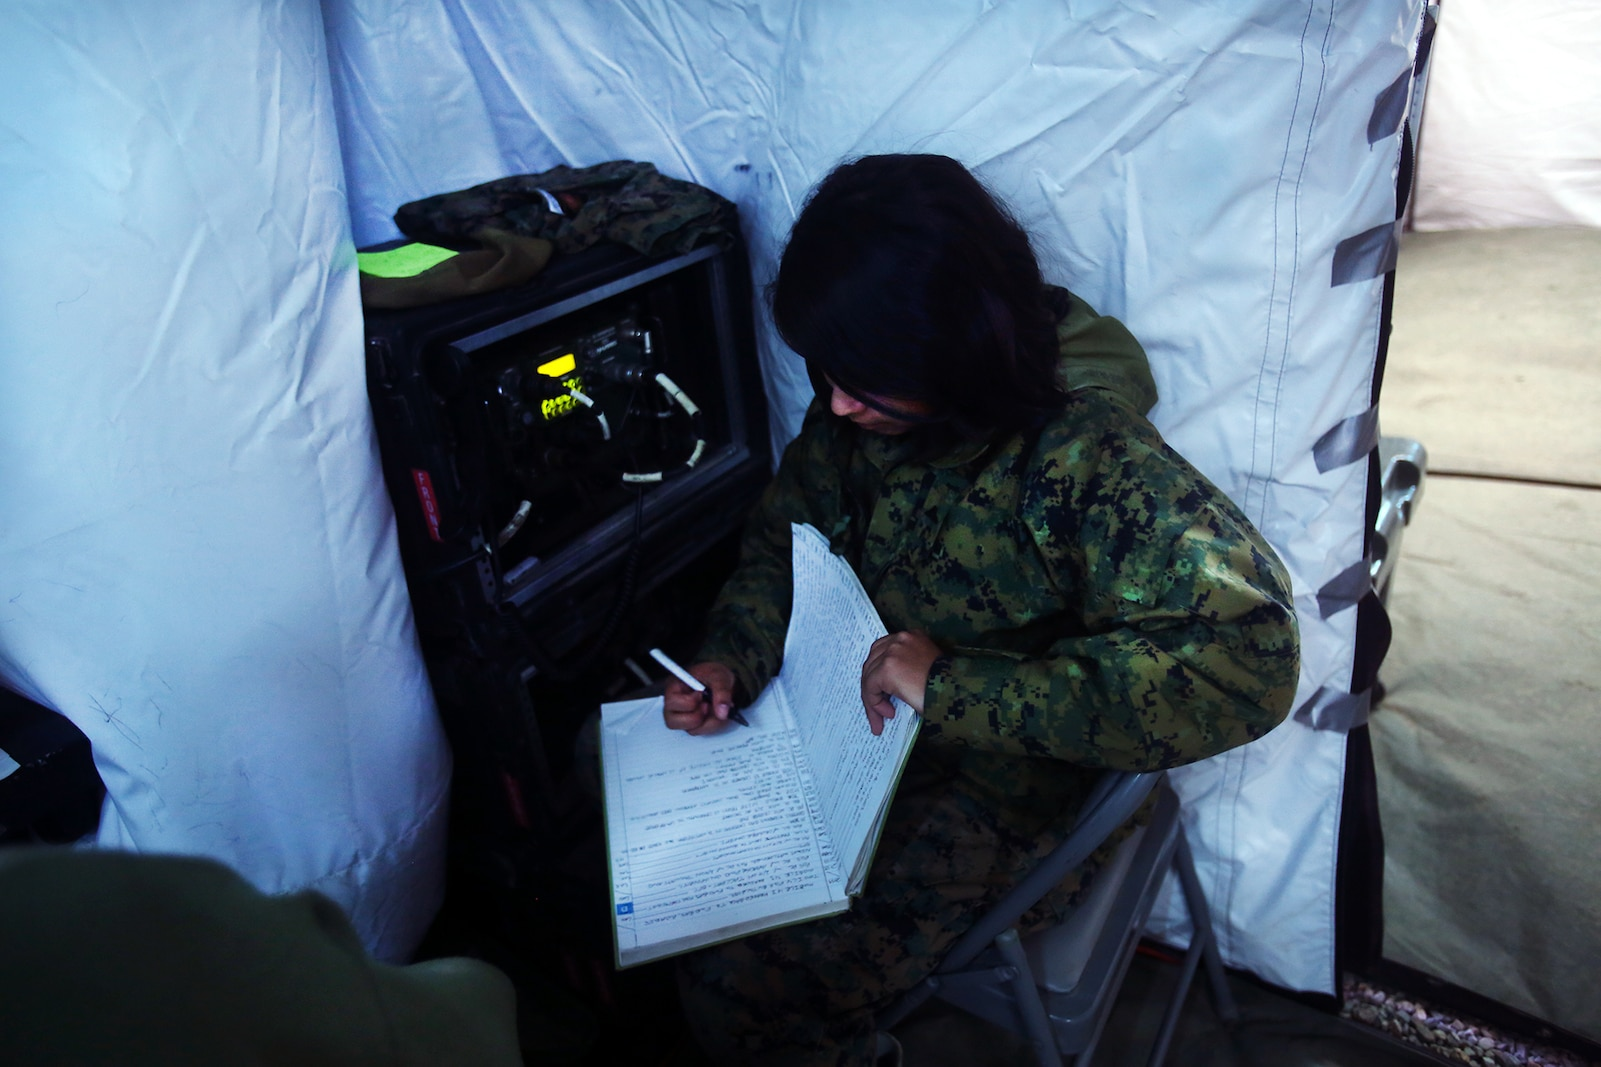 A field radio operator logs in a convoy movement during a cold weather training exercise at the Mountain Warfare Training Center in Bridgeport, Calif., March 17, 2016. The Marine, a field radio operator with Headquarters and Support Company, 7th Engineer Support Battalion, 1st Marine Logistics Group, was among 90 Marines with 7th ESB who served as the logistics combat element in support of 2nd Battalion, 4th Marine Regiment, 1st Marine Division, during Mountain Exercise 6-16, Feb. 24- March 26, 2016. (U.S. Marine Corps photo by Sgt. Laura Gauna/released)